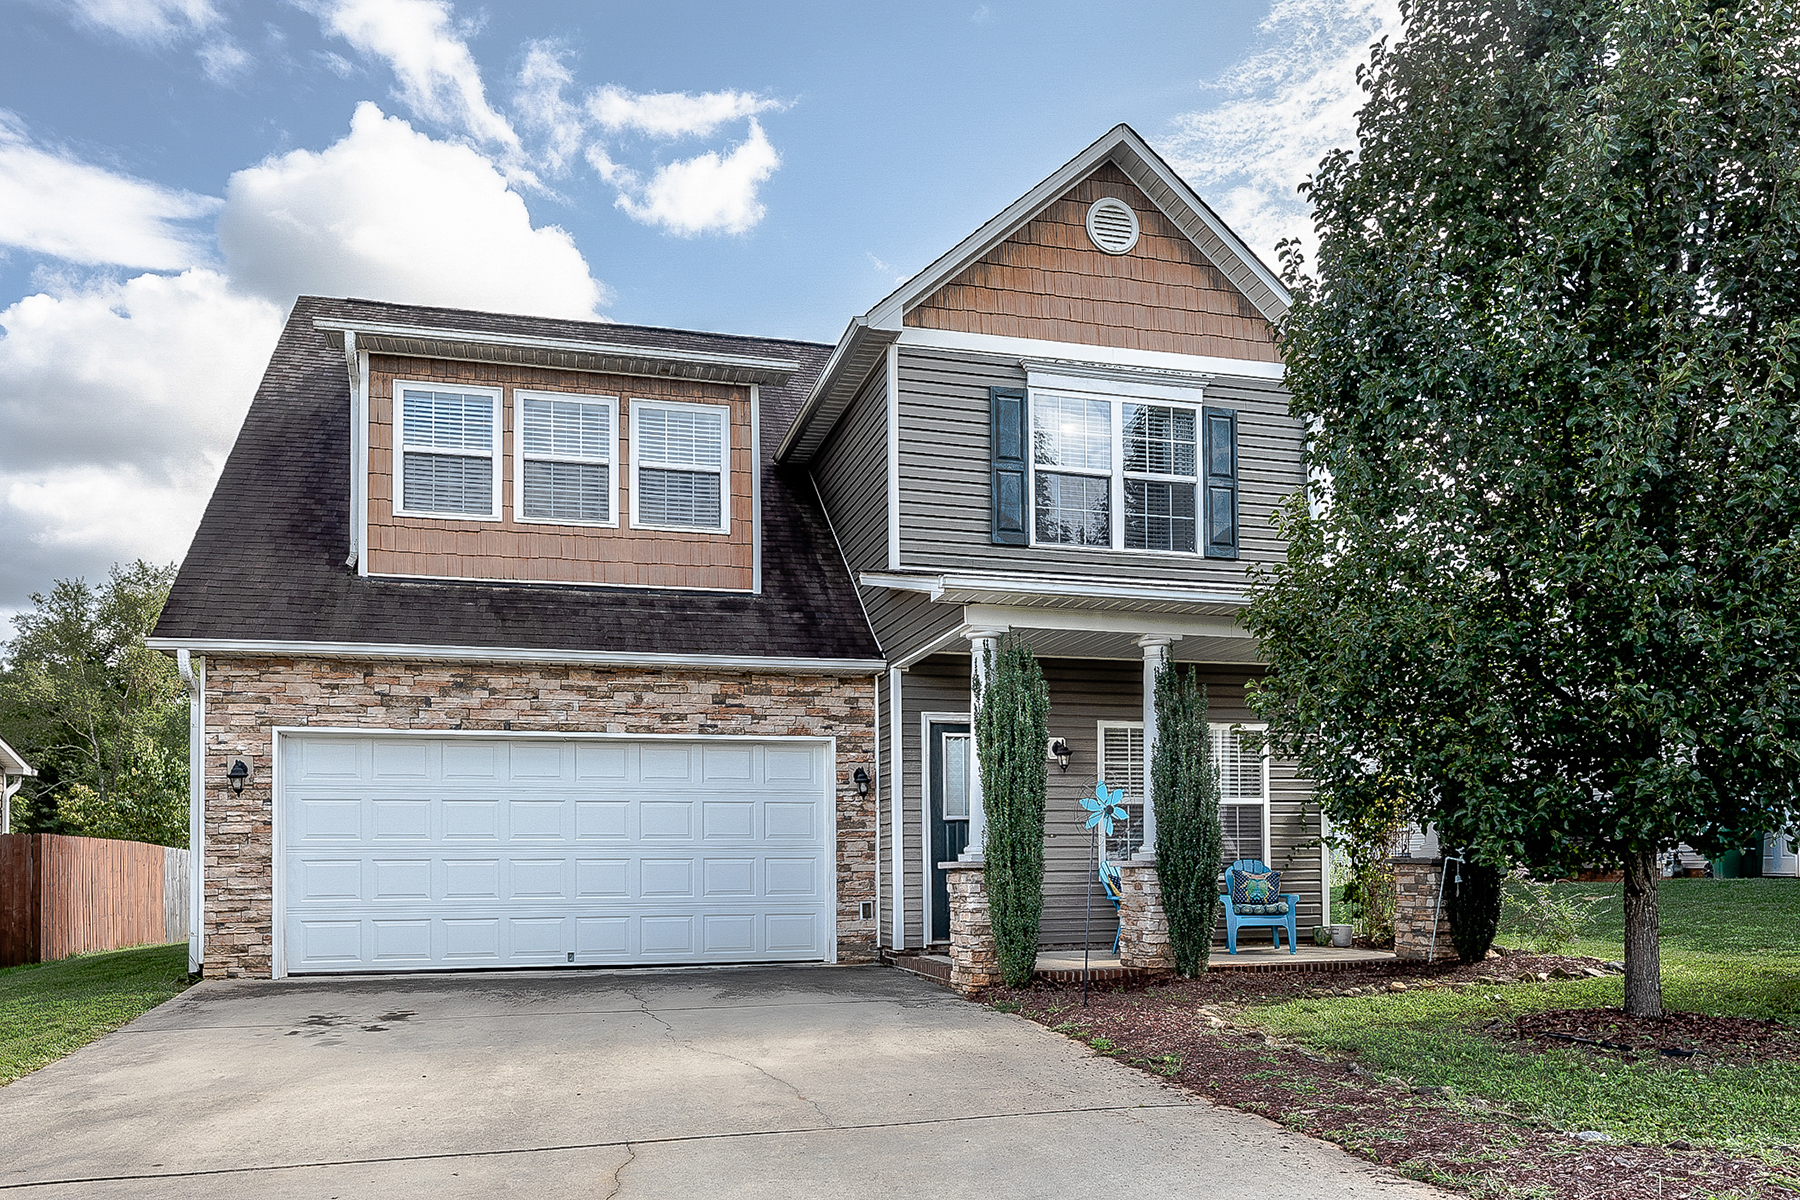 Single Family Homes for Active at WAIGHTSTILL MOUNTAIN 17 Manderley Way Arden, North Carolina 28704 United States